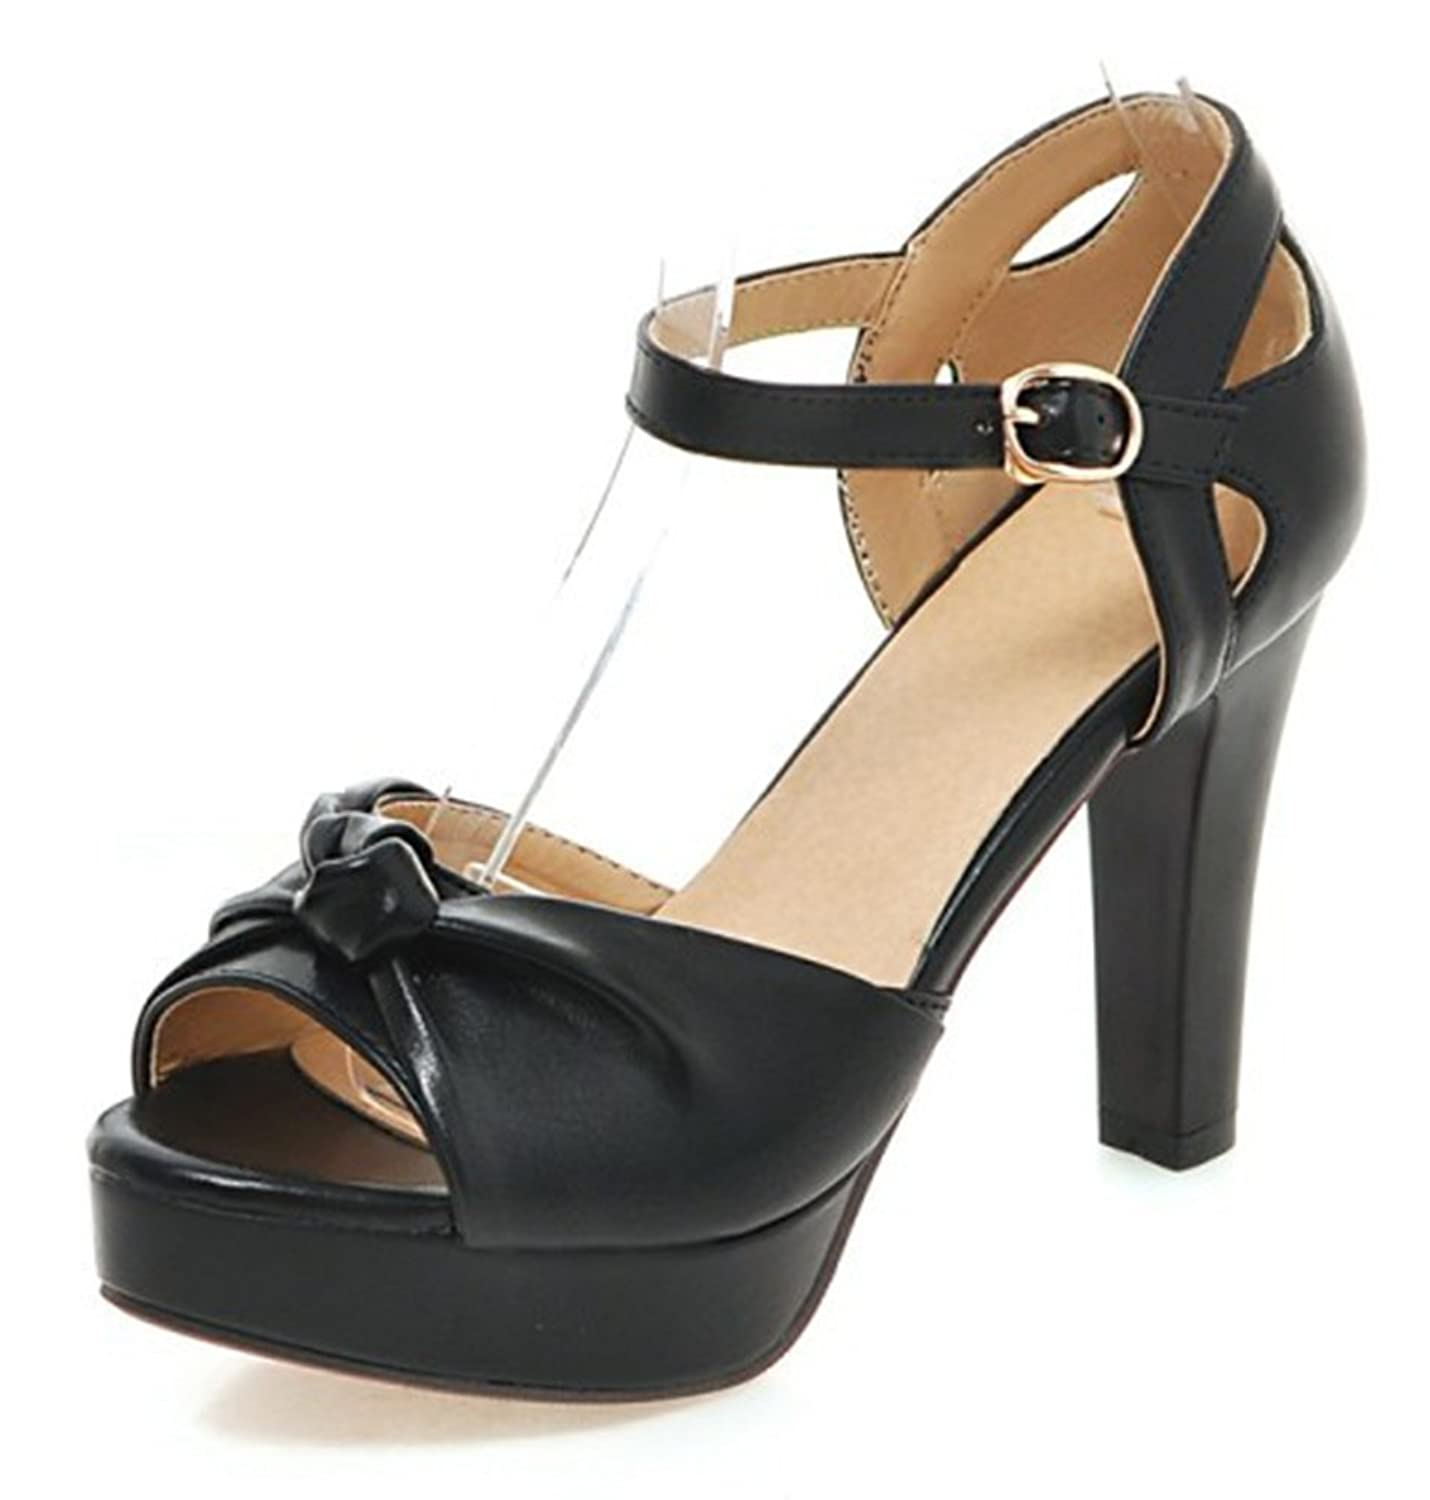 More Details kate spade new york medea low-heel suede sandal with bows, black Details kate spade new york sandal in soft suede, featuring scalloped edges and metallic trim. 2